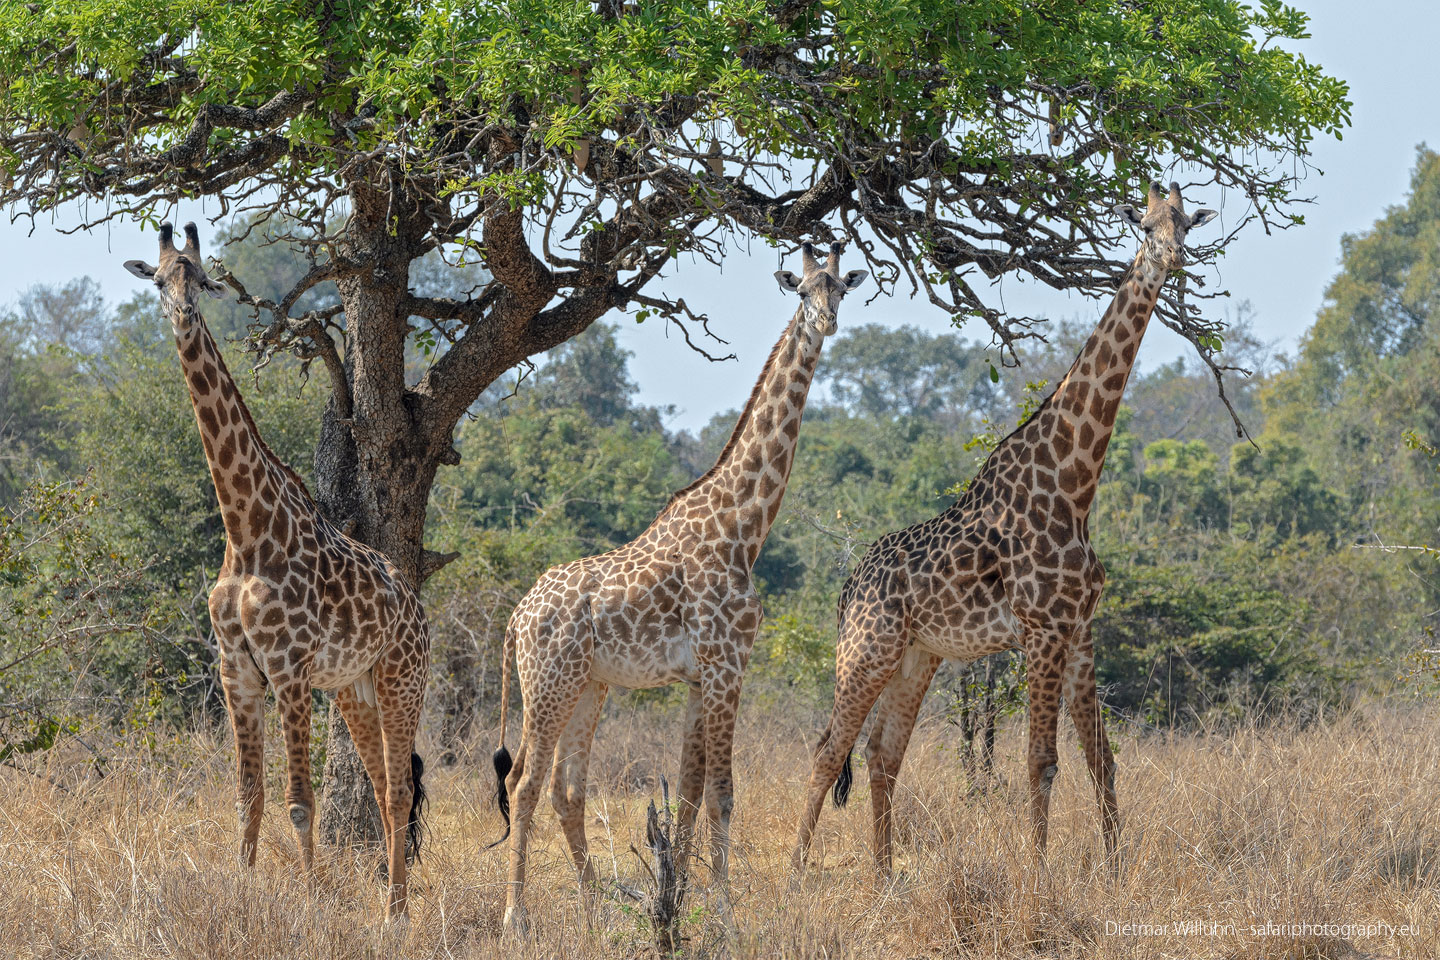 Walking Safari - Sambia